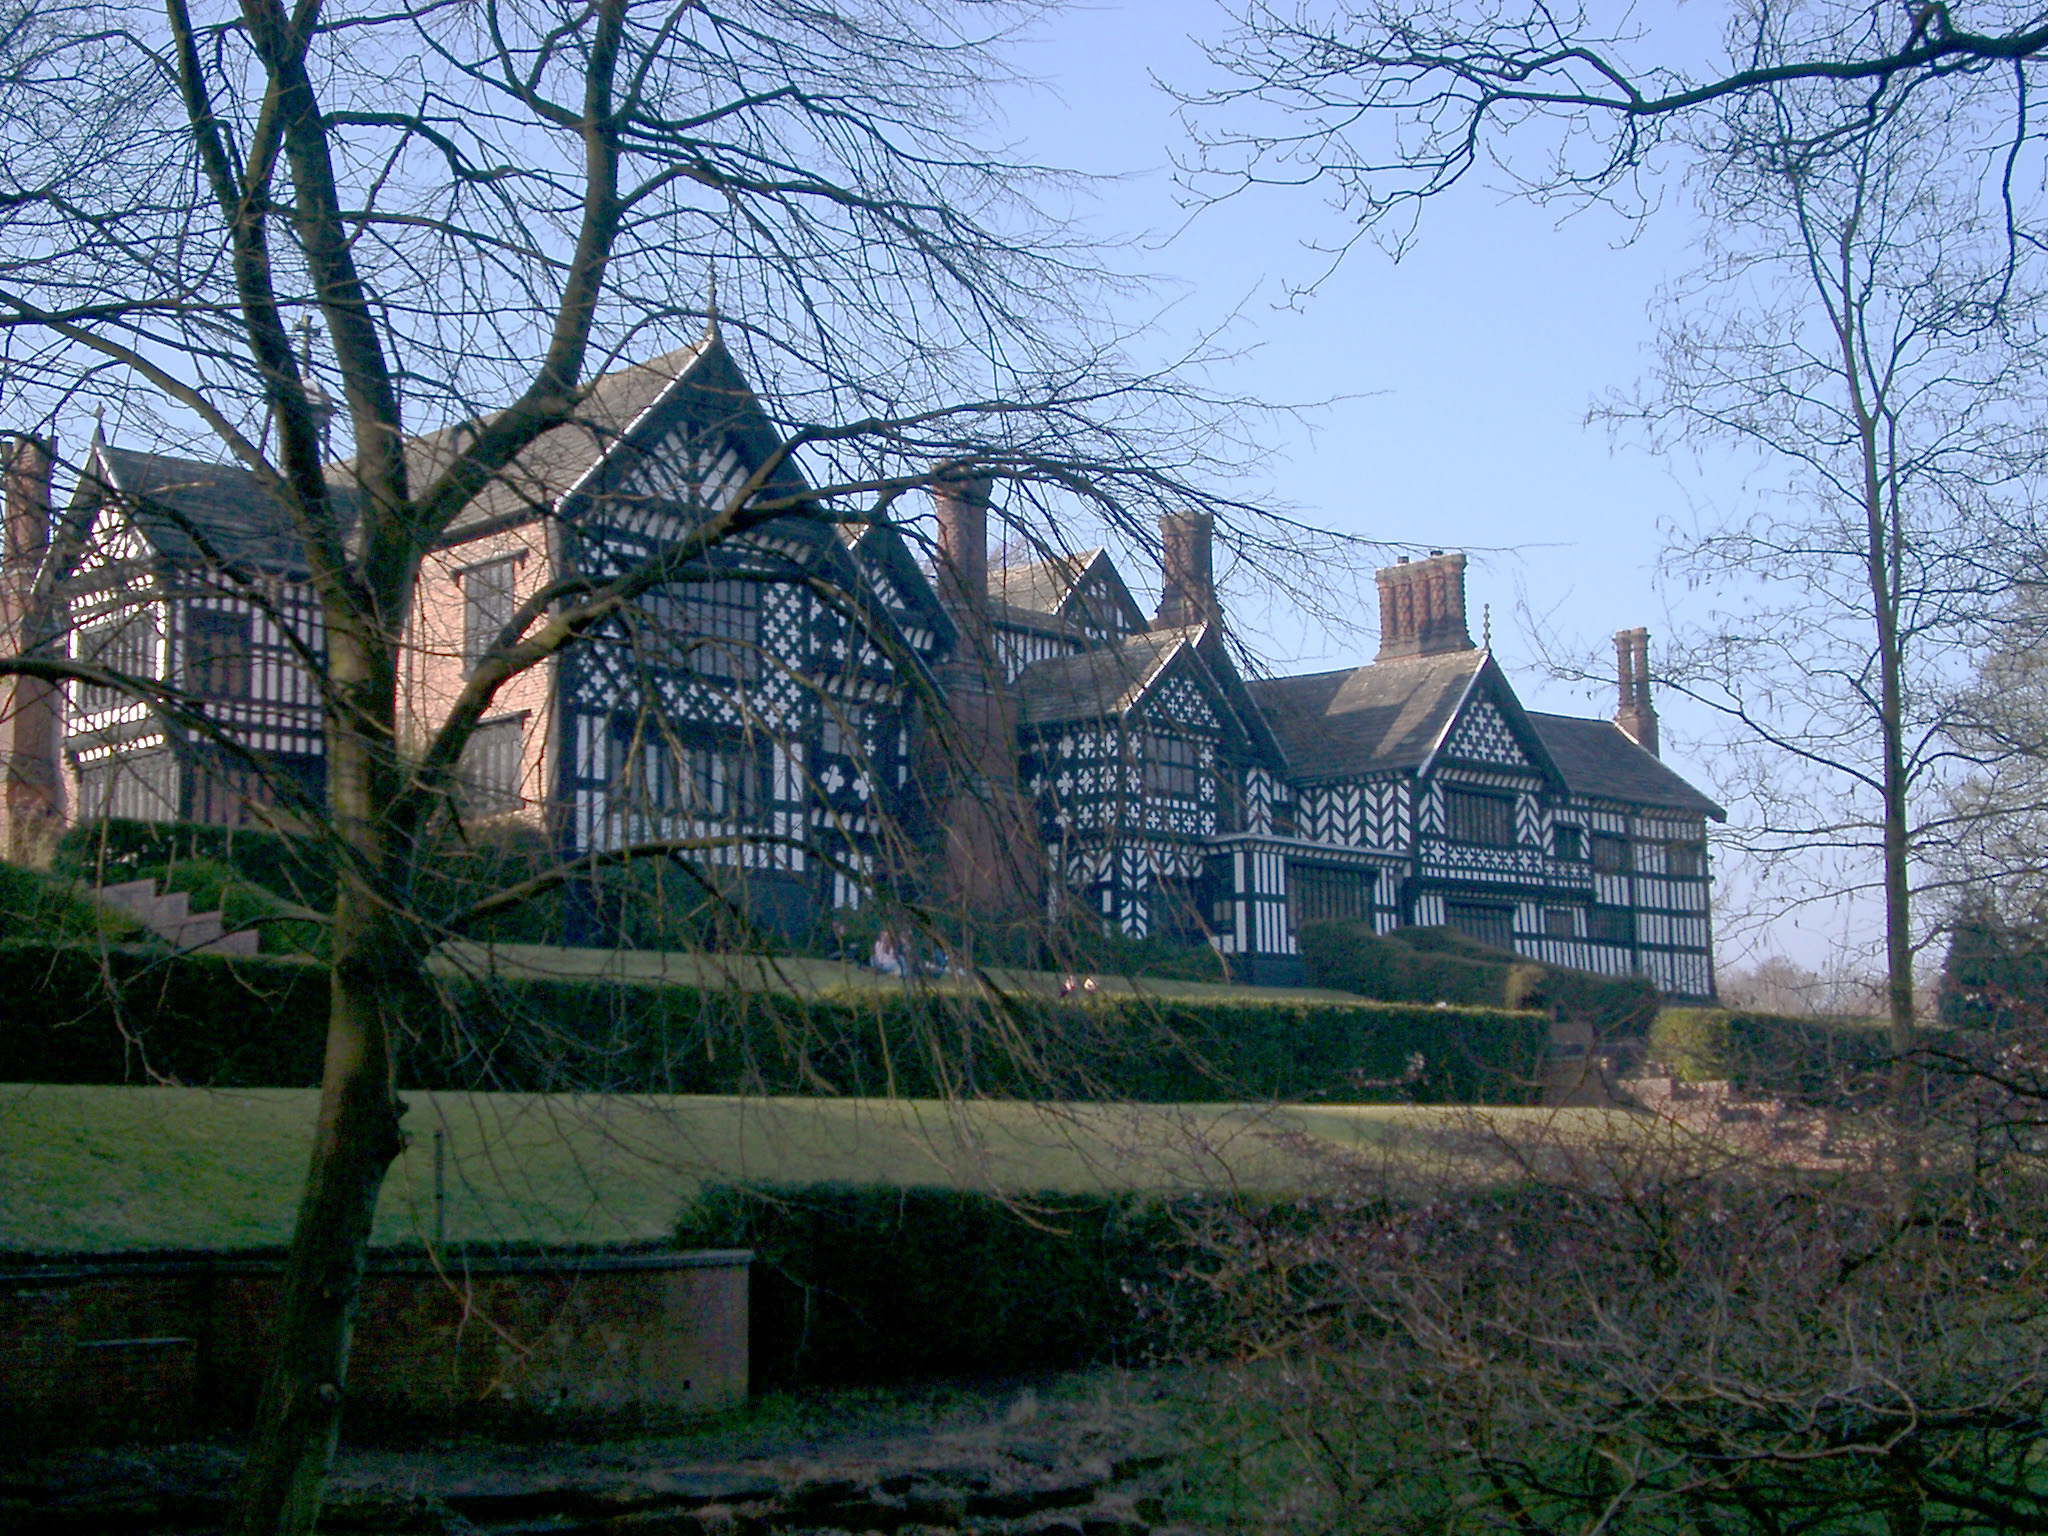 Historic House of Bramall Hall, a Tudor Manor House in Bramhall, Greater Manchester, England